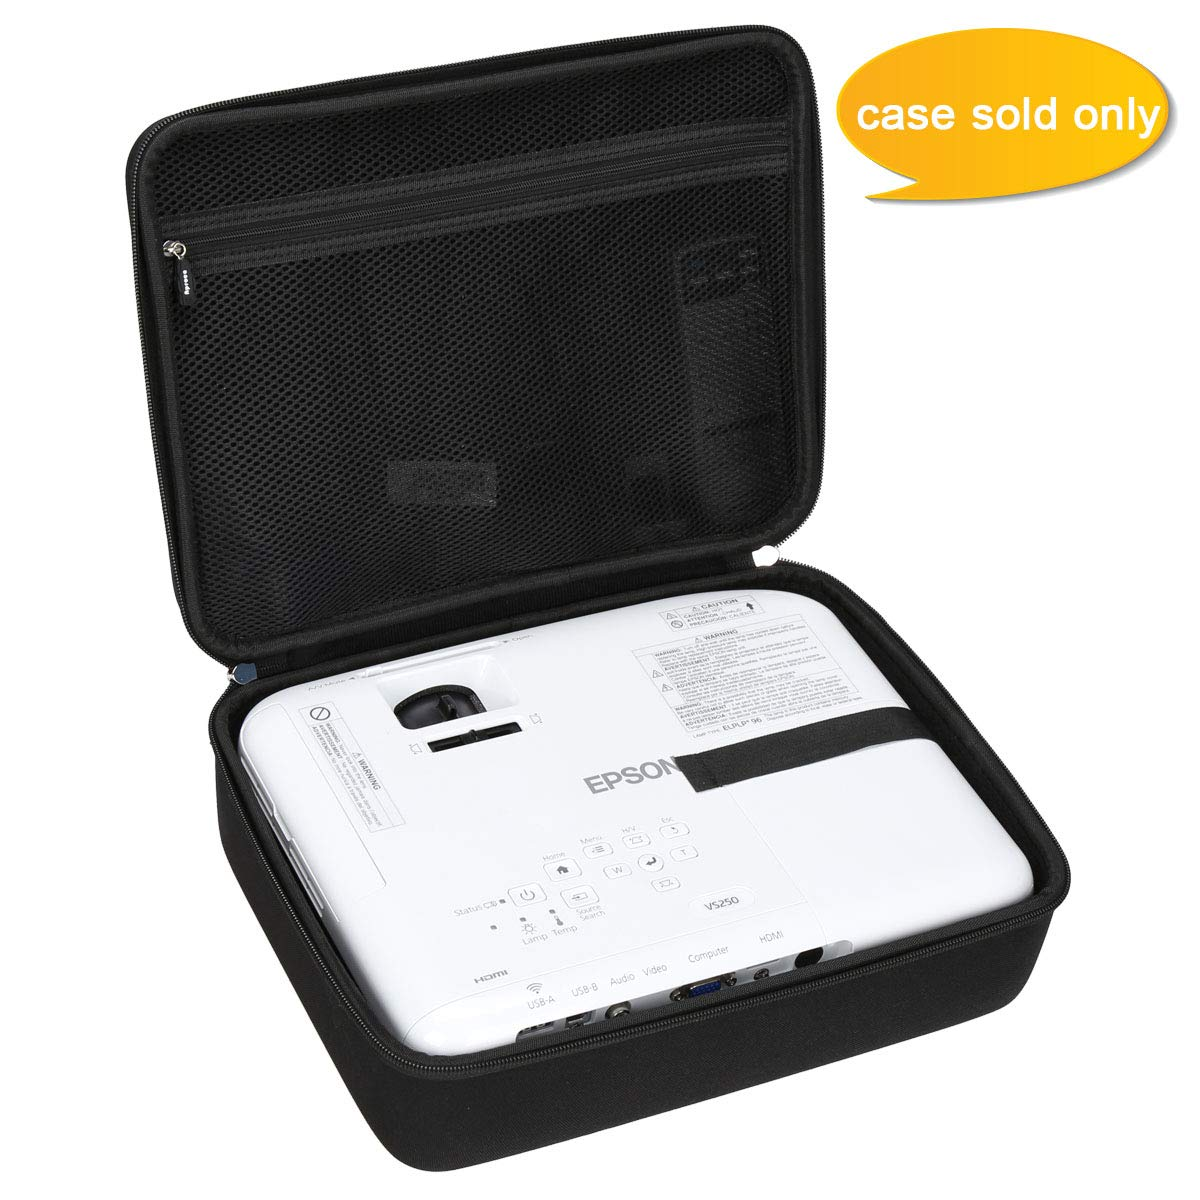 Aproca Hard Travel Storage Carrying Case Bag Fit Epson VS250 / VS240 SVGA 3LCD Projector by Aproca